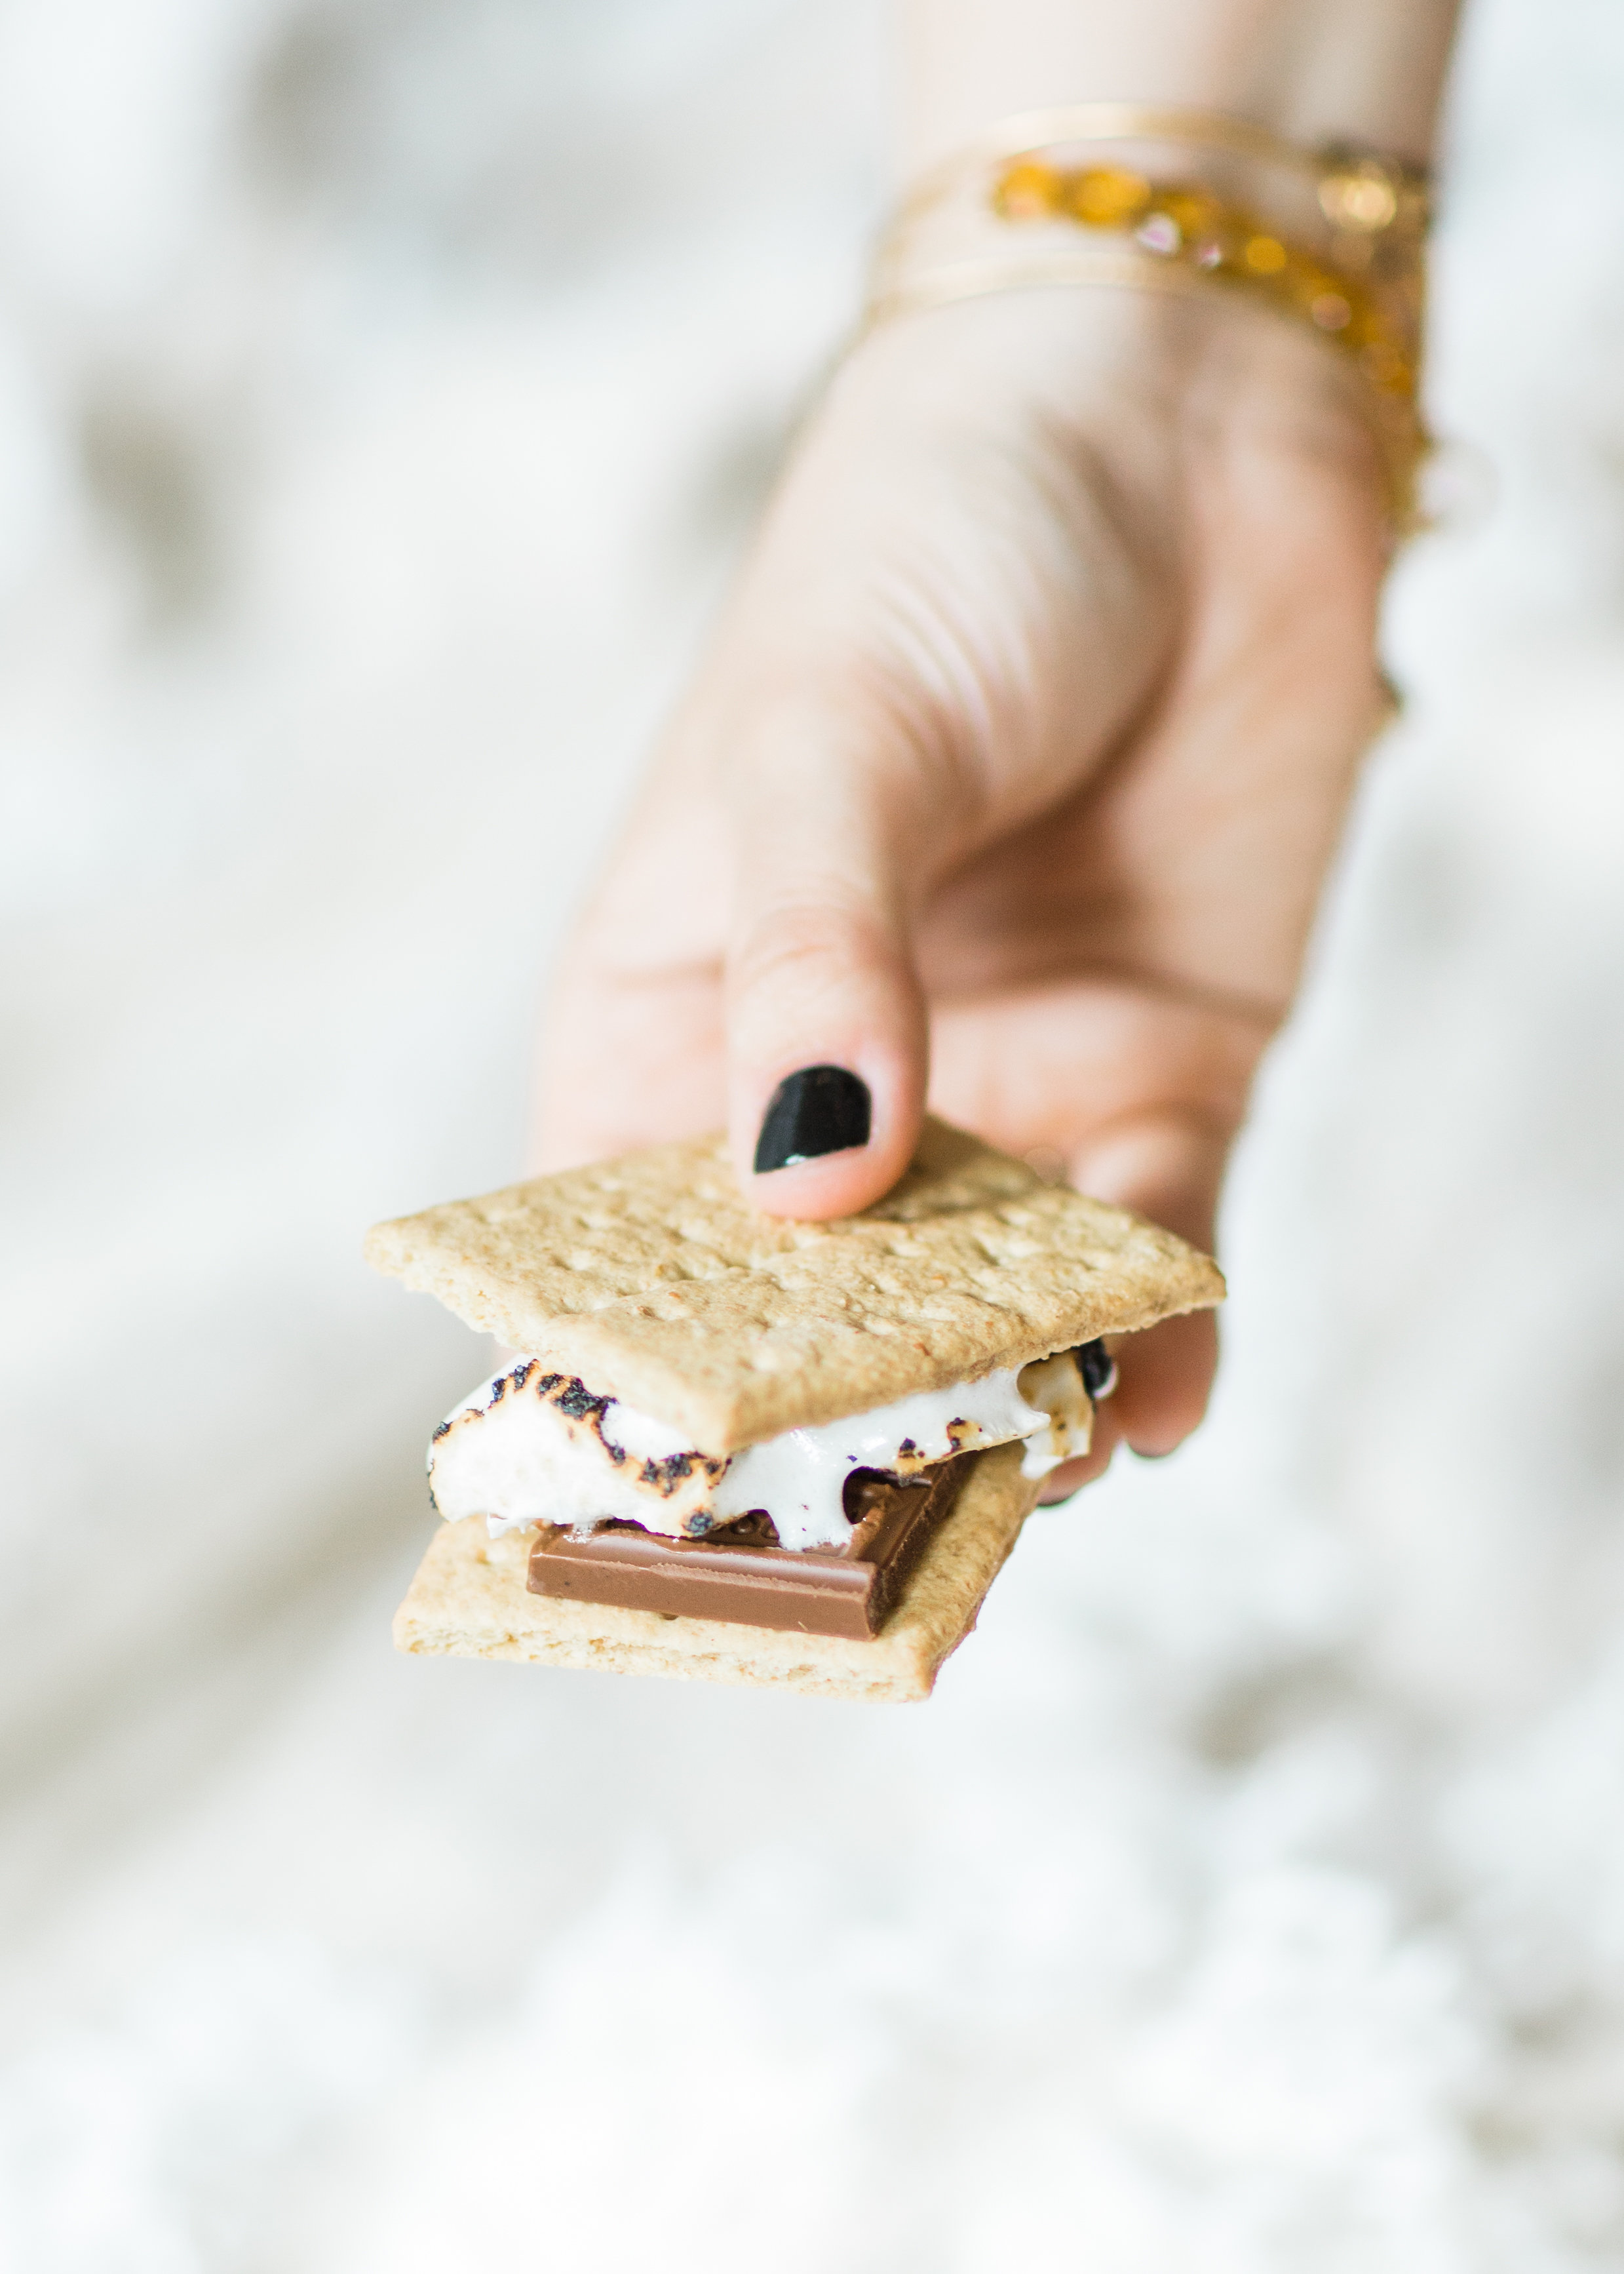 Want to plan a family fun night that is perfect for your gang this summer? Turn your living room into a campy lounge for an epic movie night with the kids, complete with indoor s'mores! #smores #indoorsmores #movienight #familynight #familyfun | glitterinc.com | @glitterinc